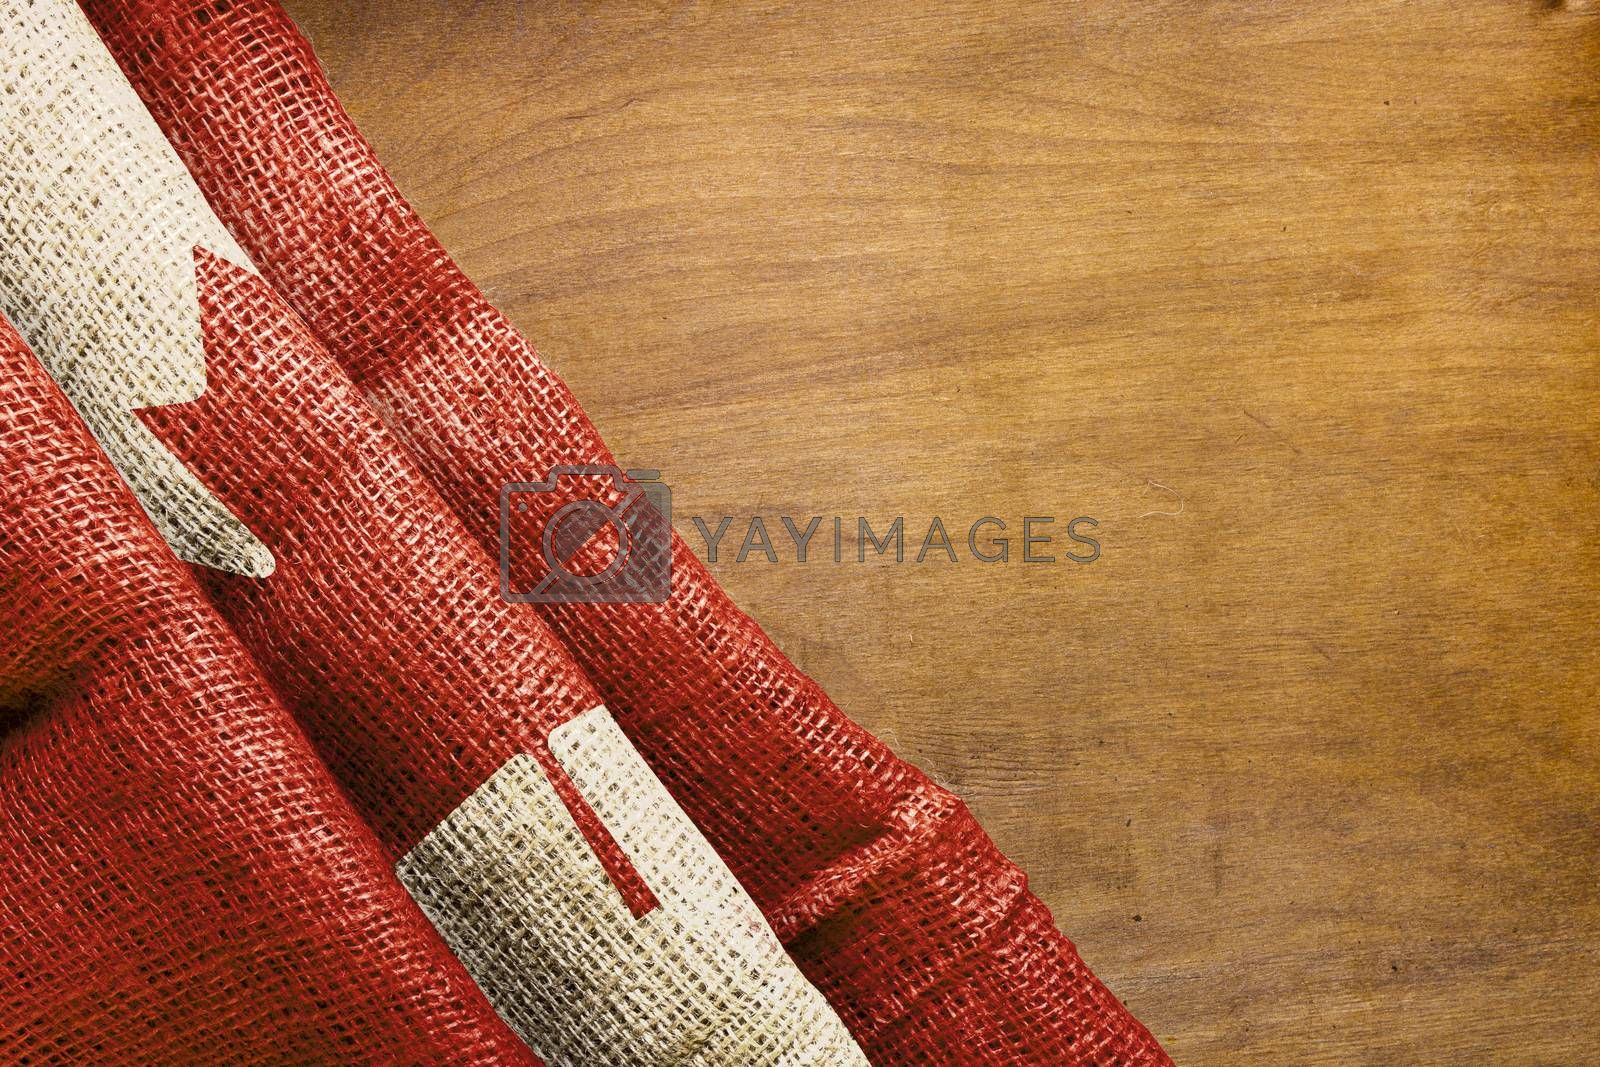 Flag of Canada on a wooden background.